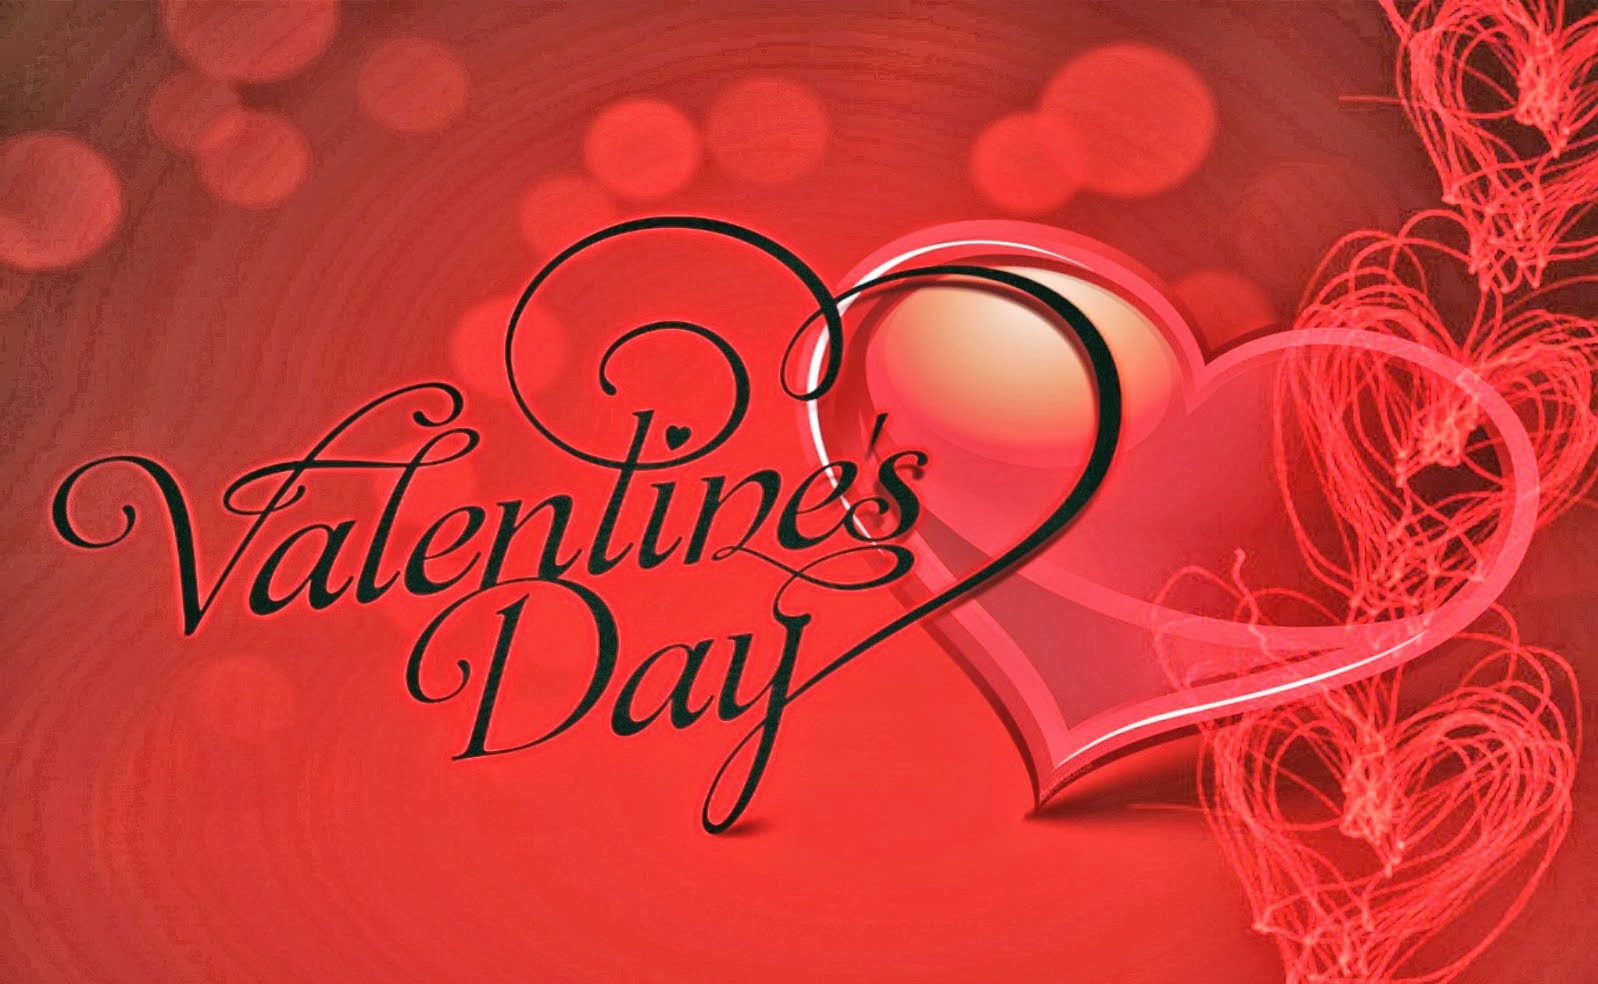 Old town trolley tours blog blog archive valentines day happy valentines day valentines day greetings 2015 m4hsunfo